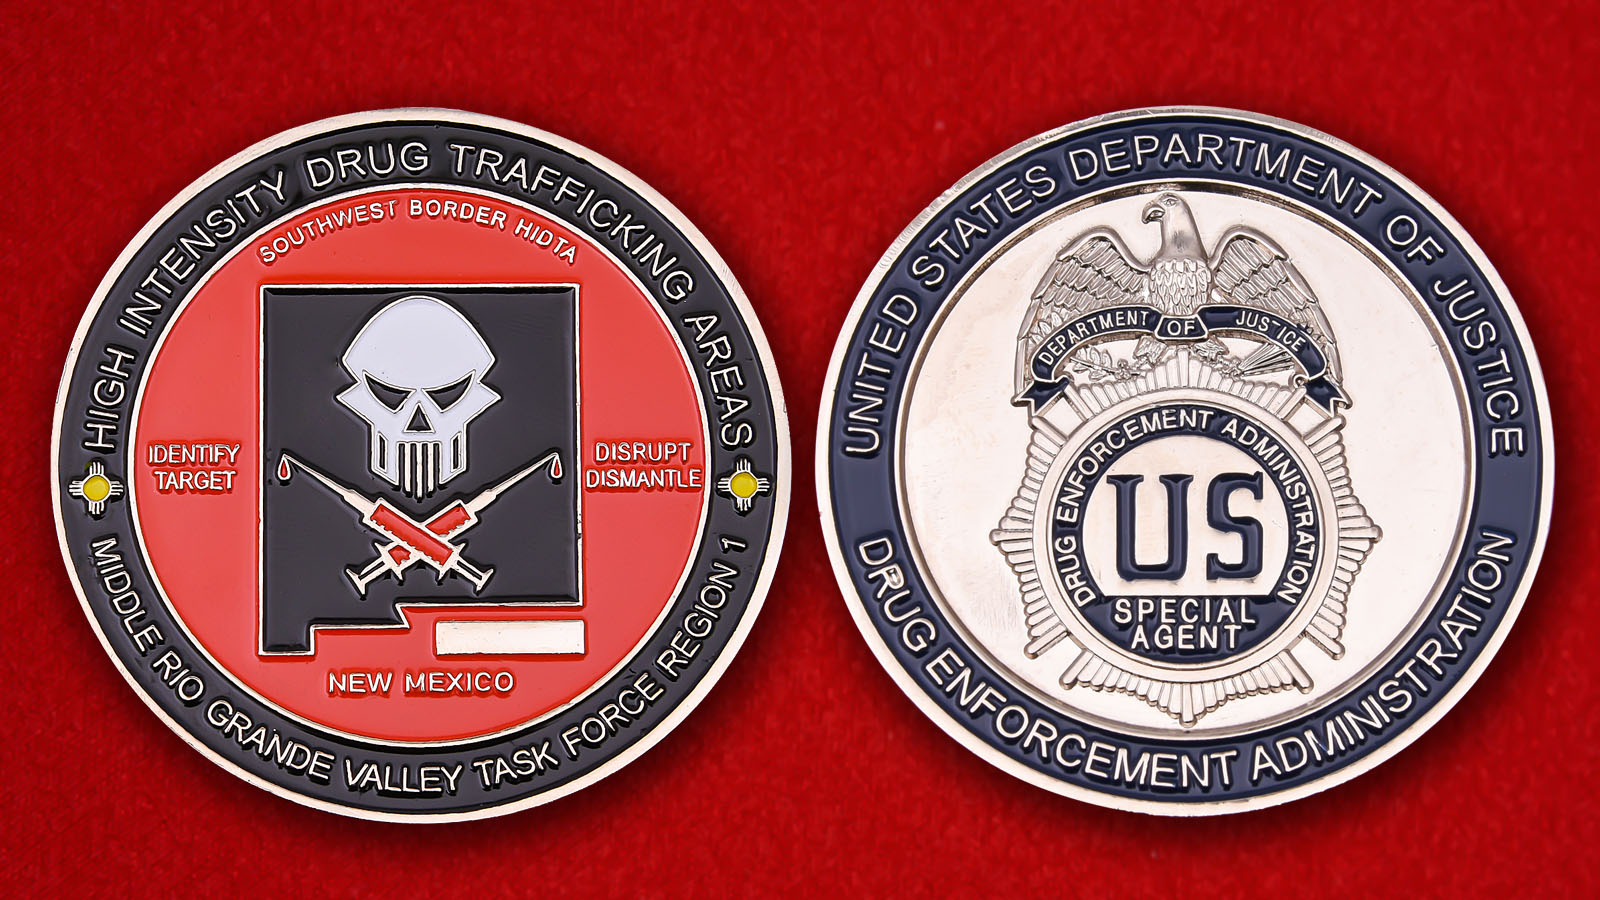 DEA Middle Rio Grande Valley Task Force Region-1 Challenge Coin